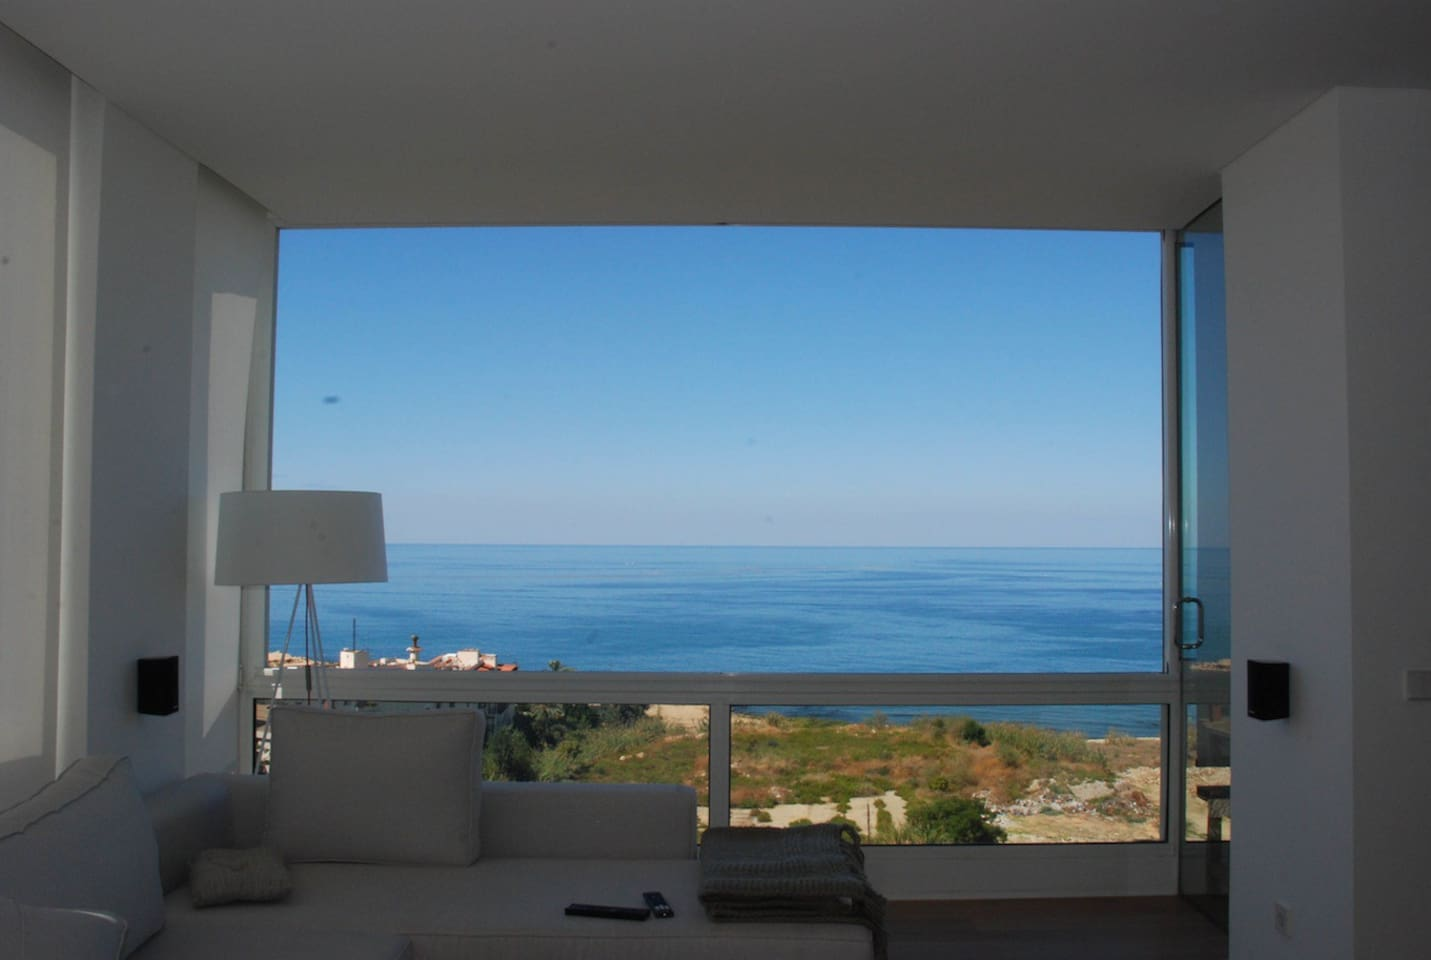 180' Sea View - Here with windows fully opened